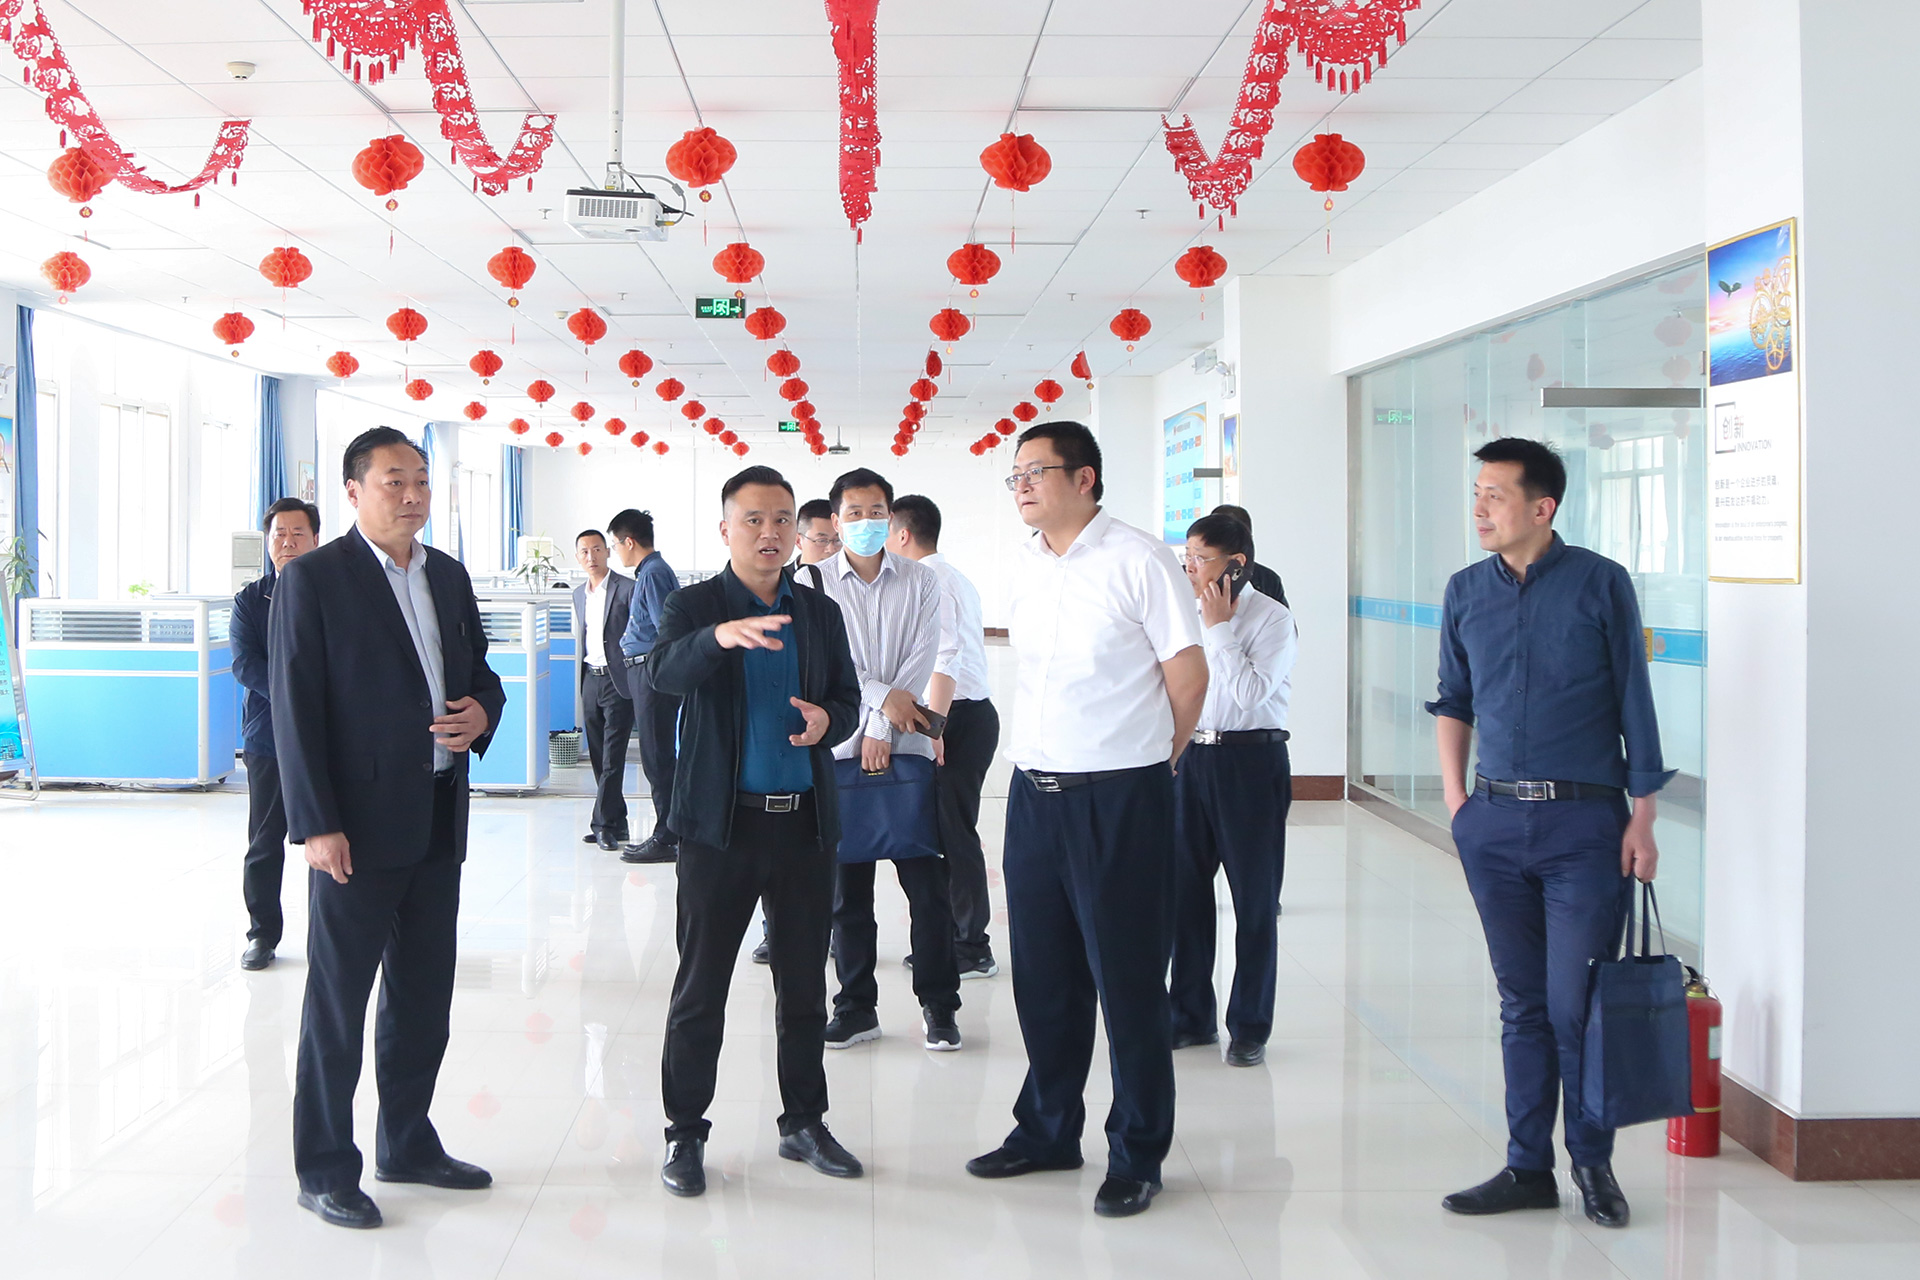 Warmly Welcome The Leaders Of Zibo Human Resources And Social Security Bureau To Visit China Coal Group